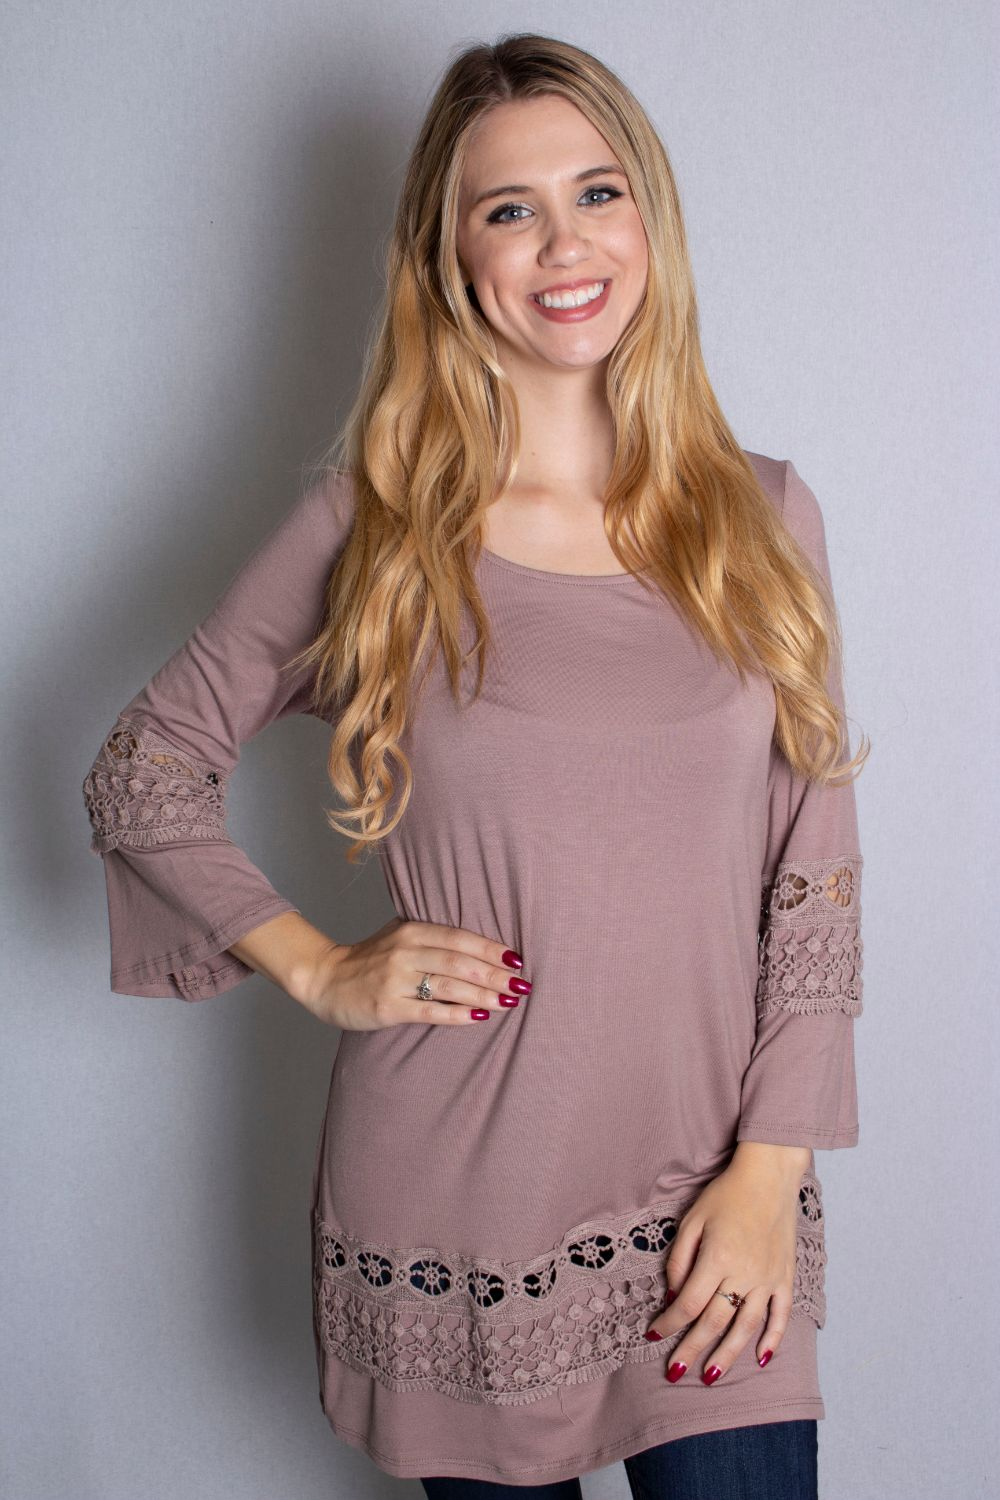 Women's 3/4 Bell Sleeve Top with Crochet Detail